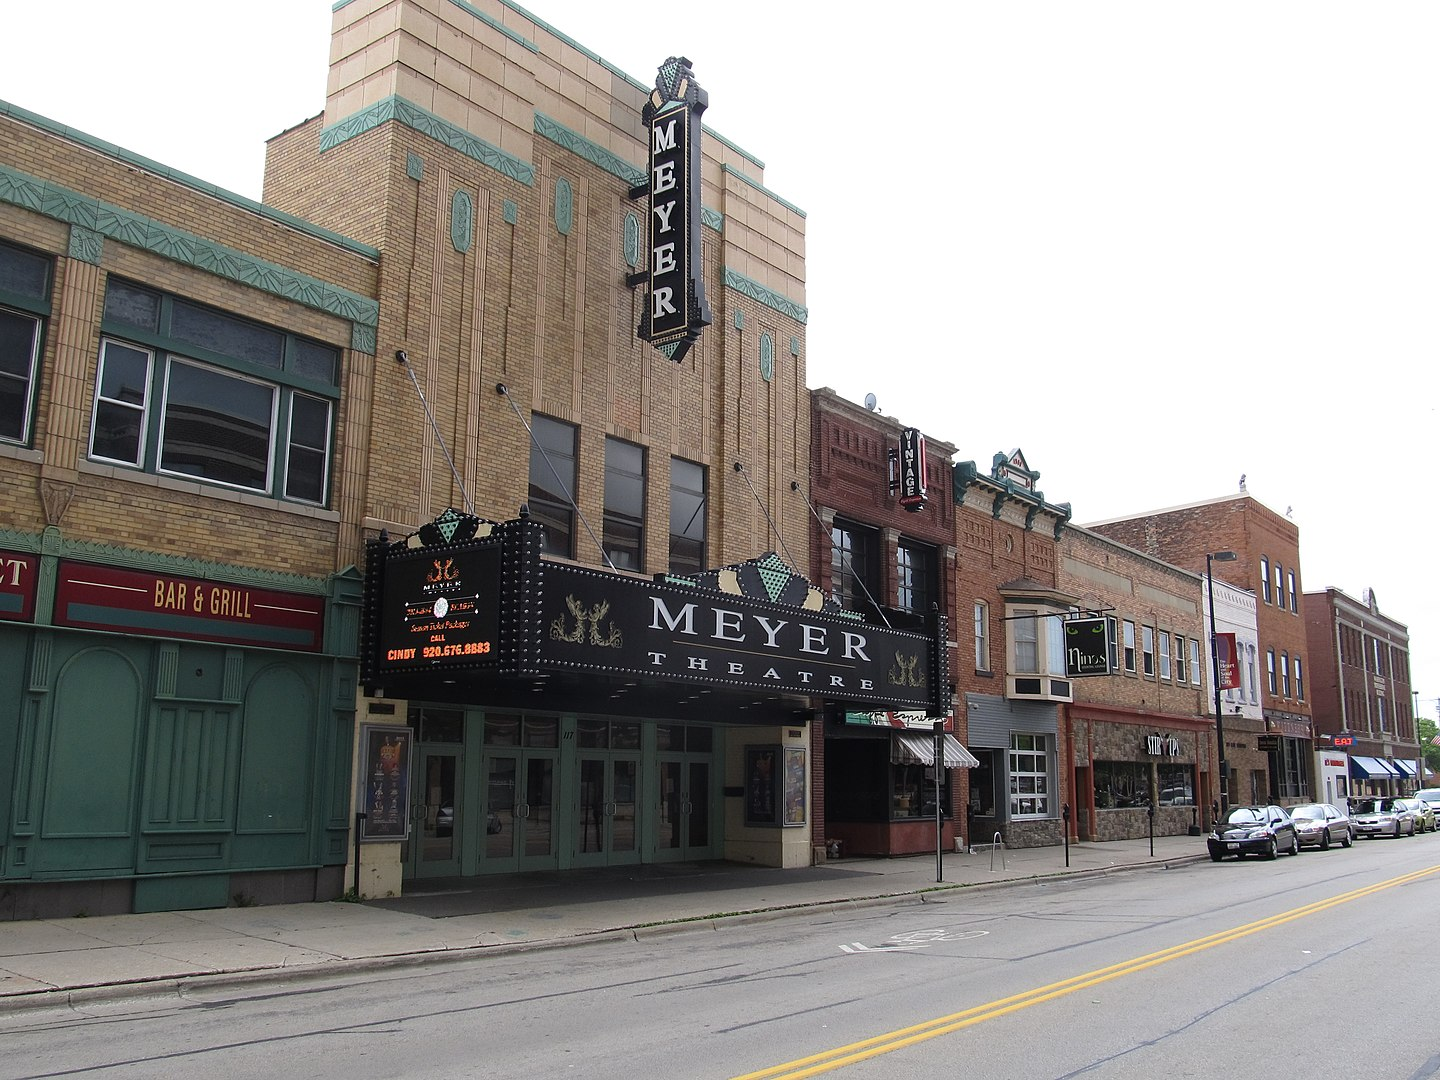 2013 Photo of the Meyer Theatre, formerly known as the Bay Theatre and, historically, the Fox Theatre